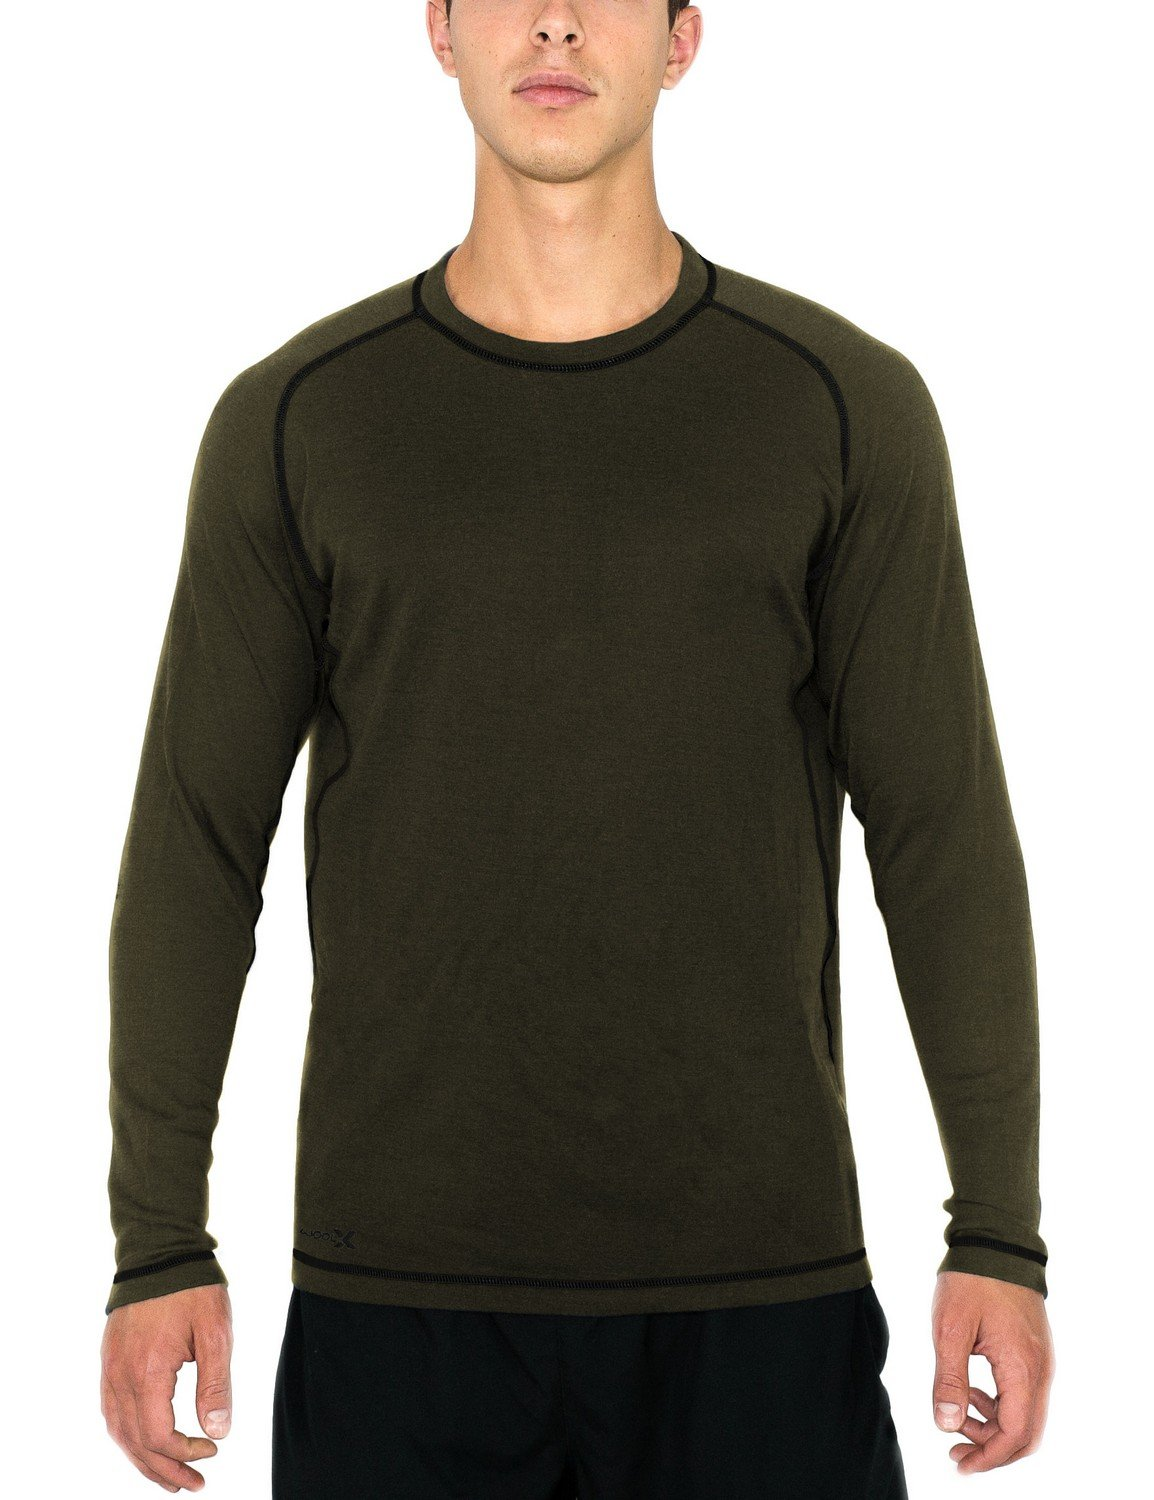 Woolx Men's Merino Wool Shirt - Midweight Base Layer Top - Warmth Without Bulk X506